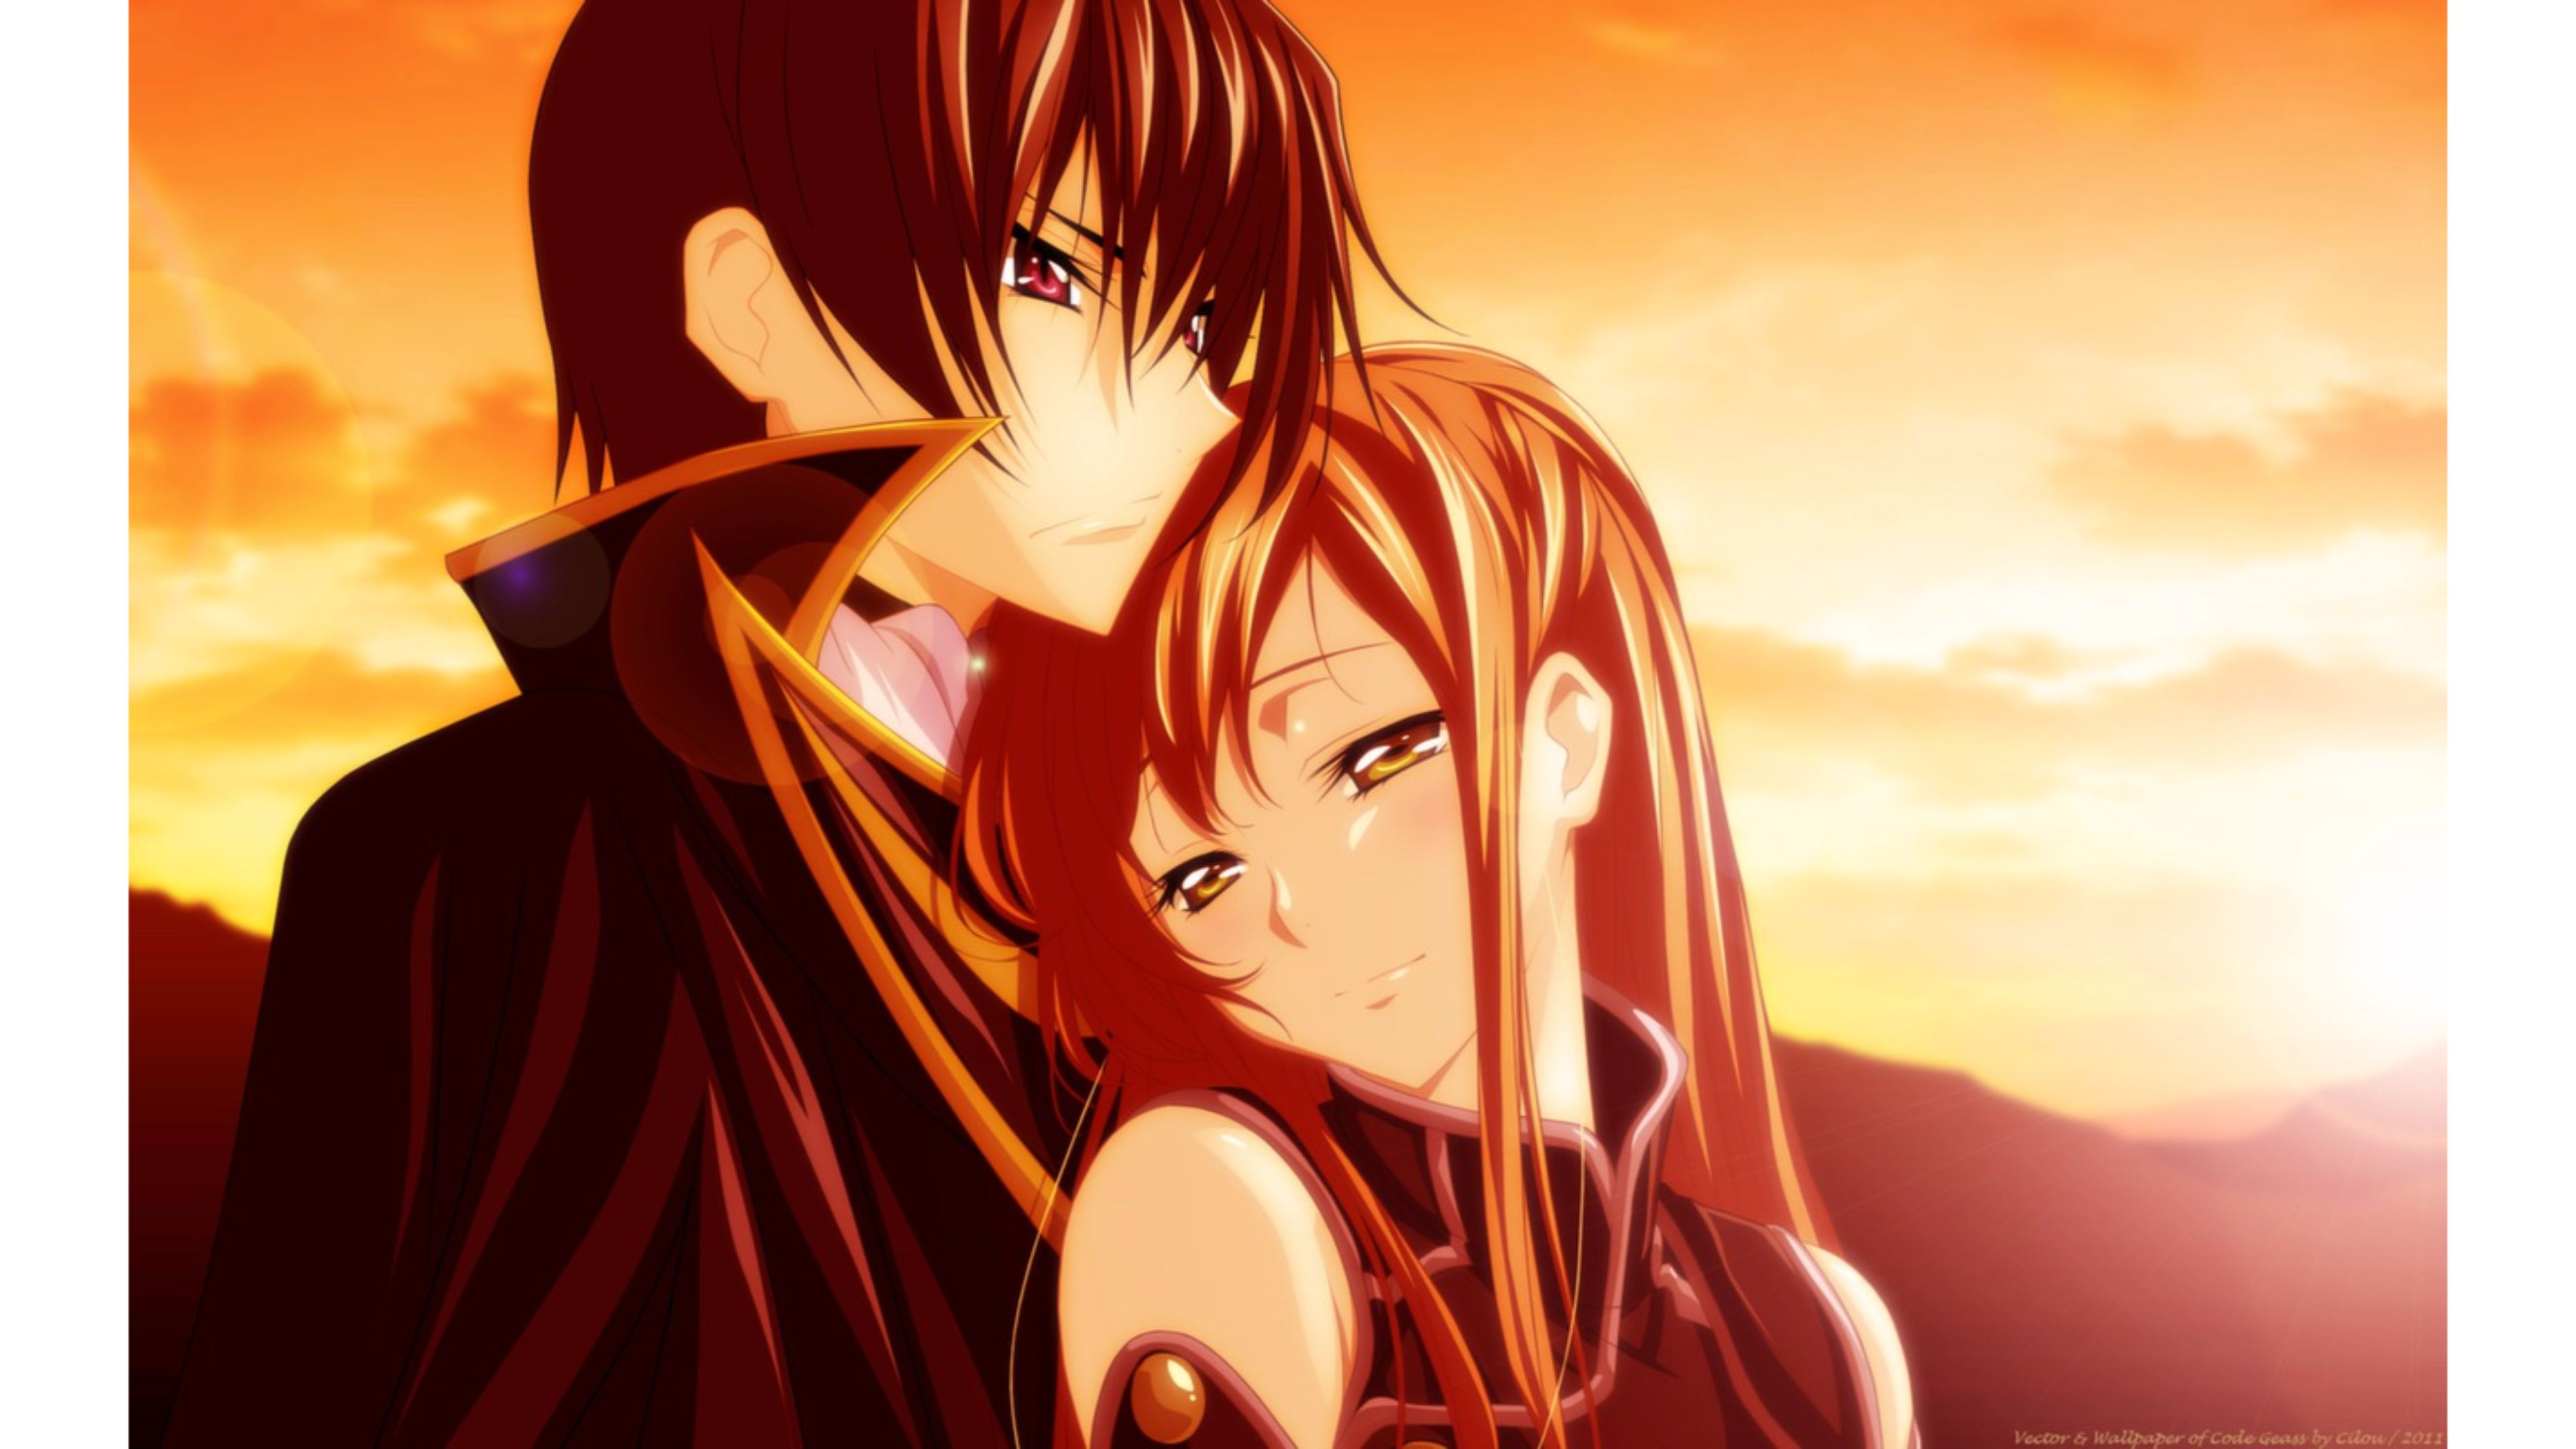 Love anime wallpapers top free love anime backgrounds - Anime love wallpaper ...